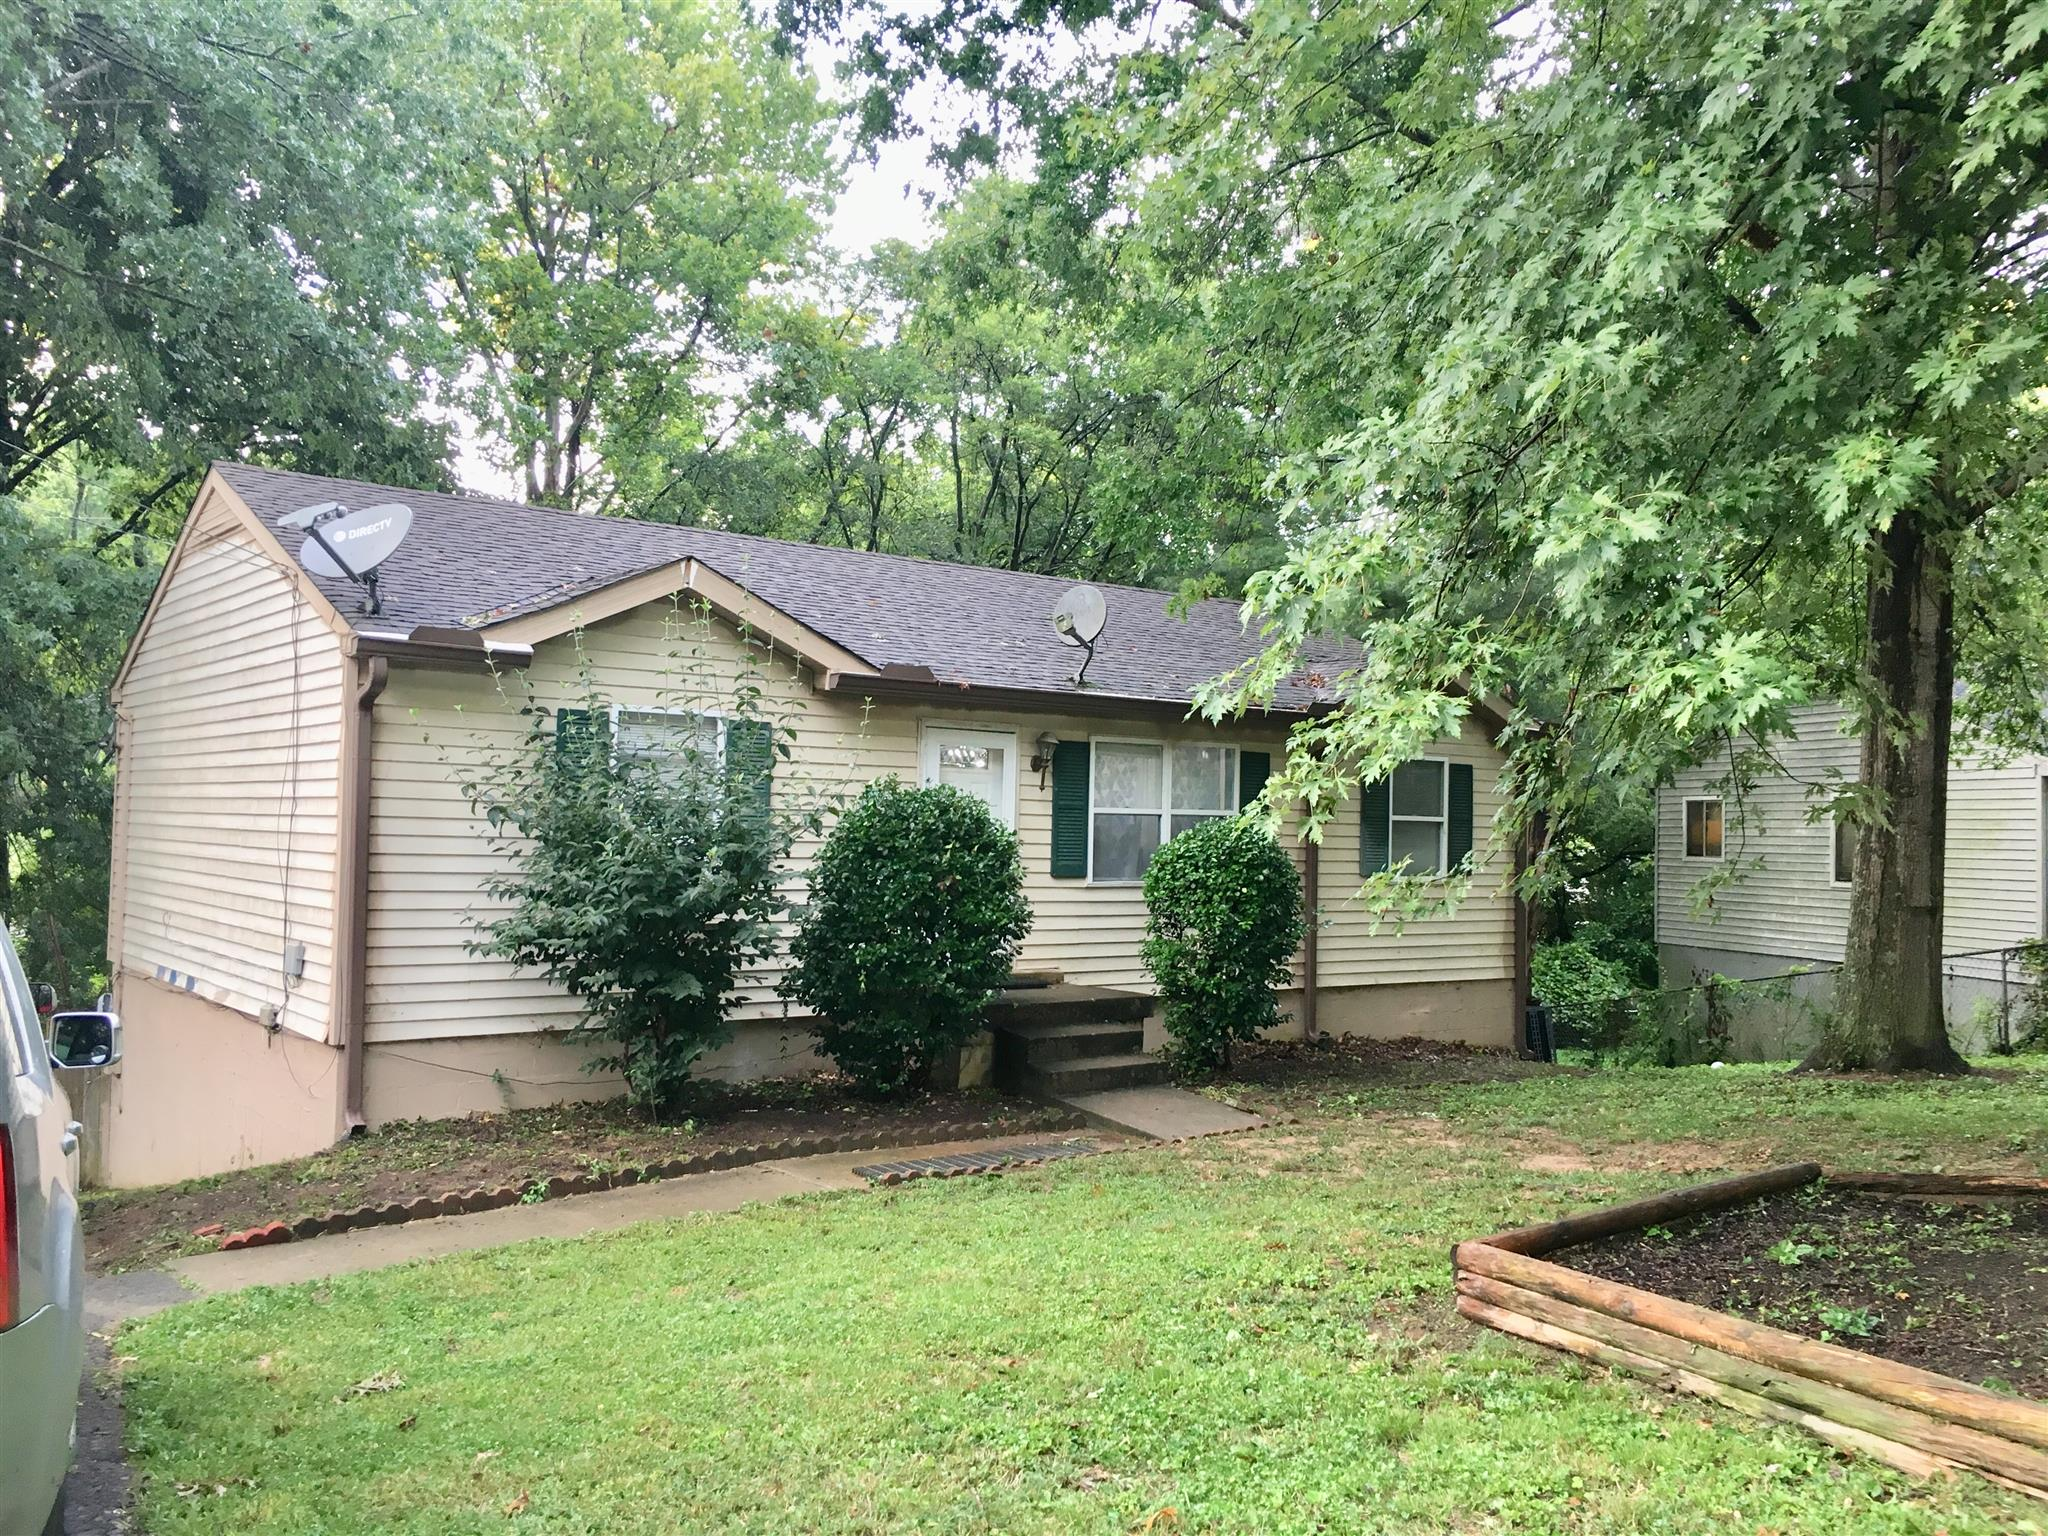 108 Bess Ct S, Antioch, TN 37013 - Antioch, TN real estate listing